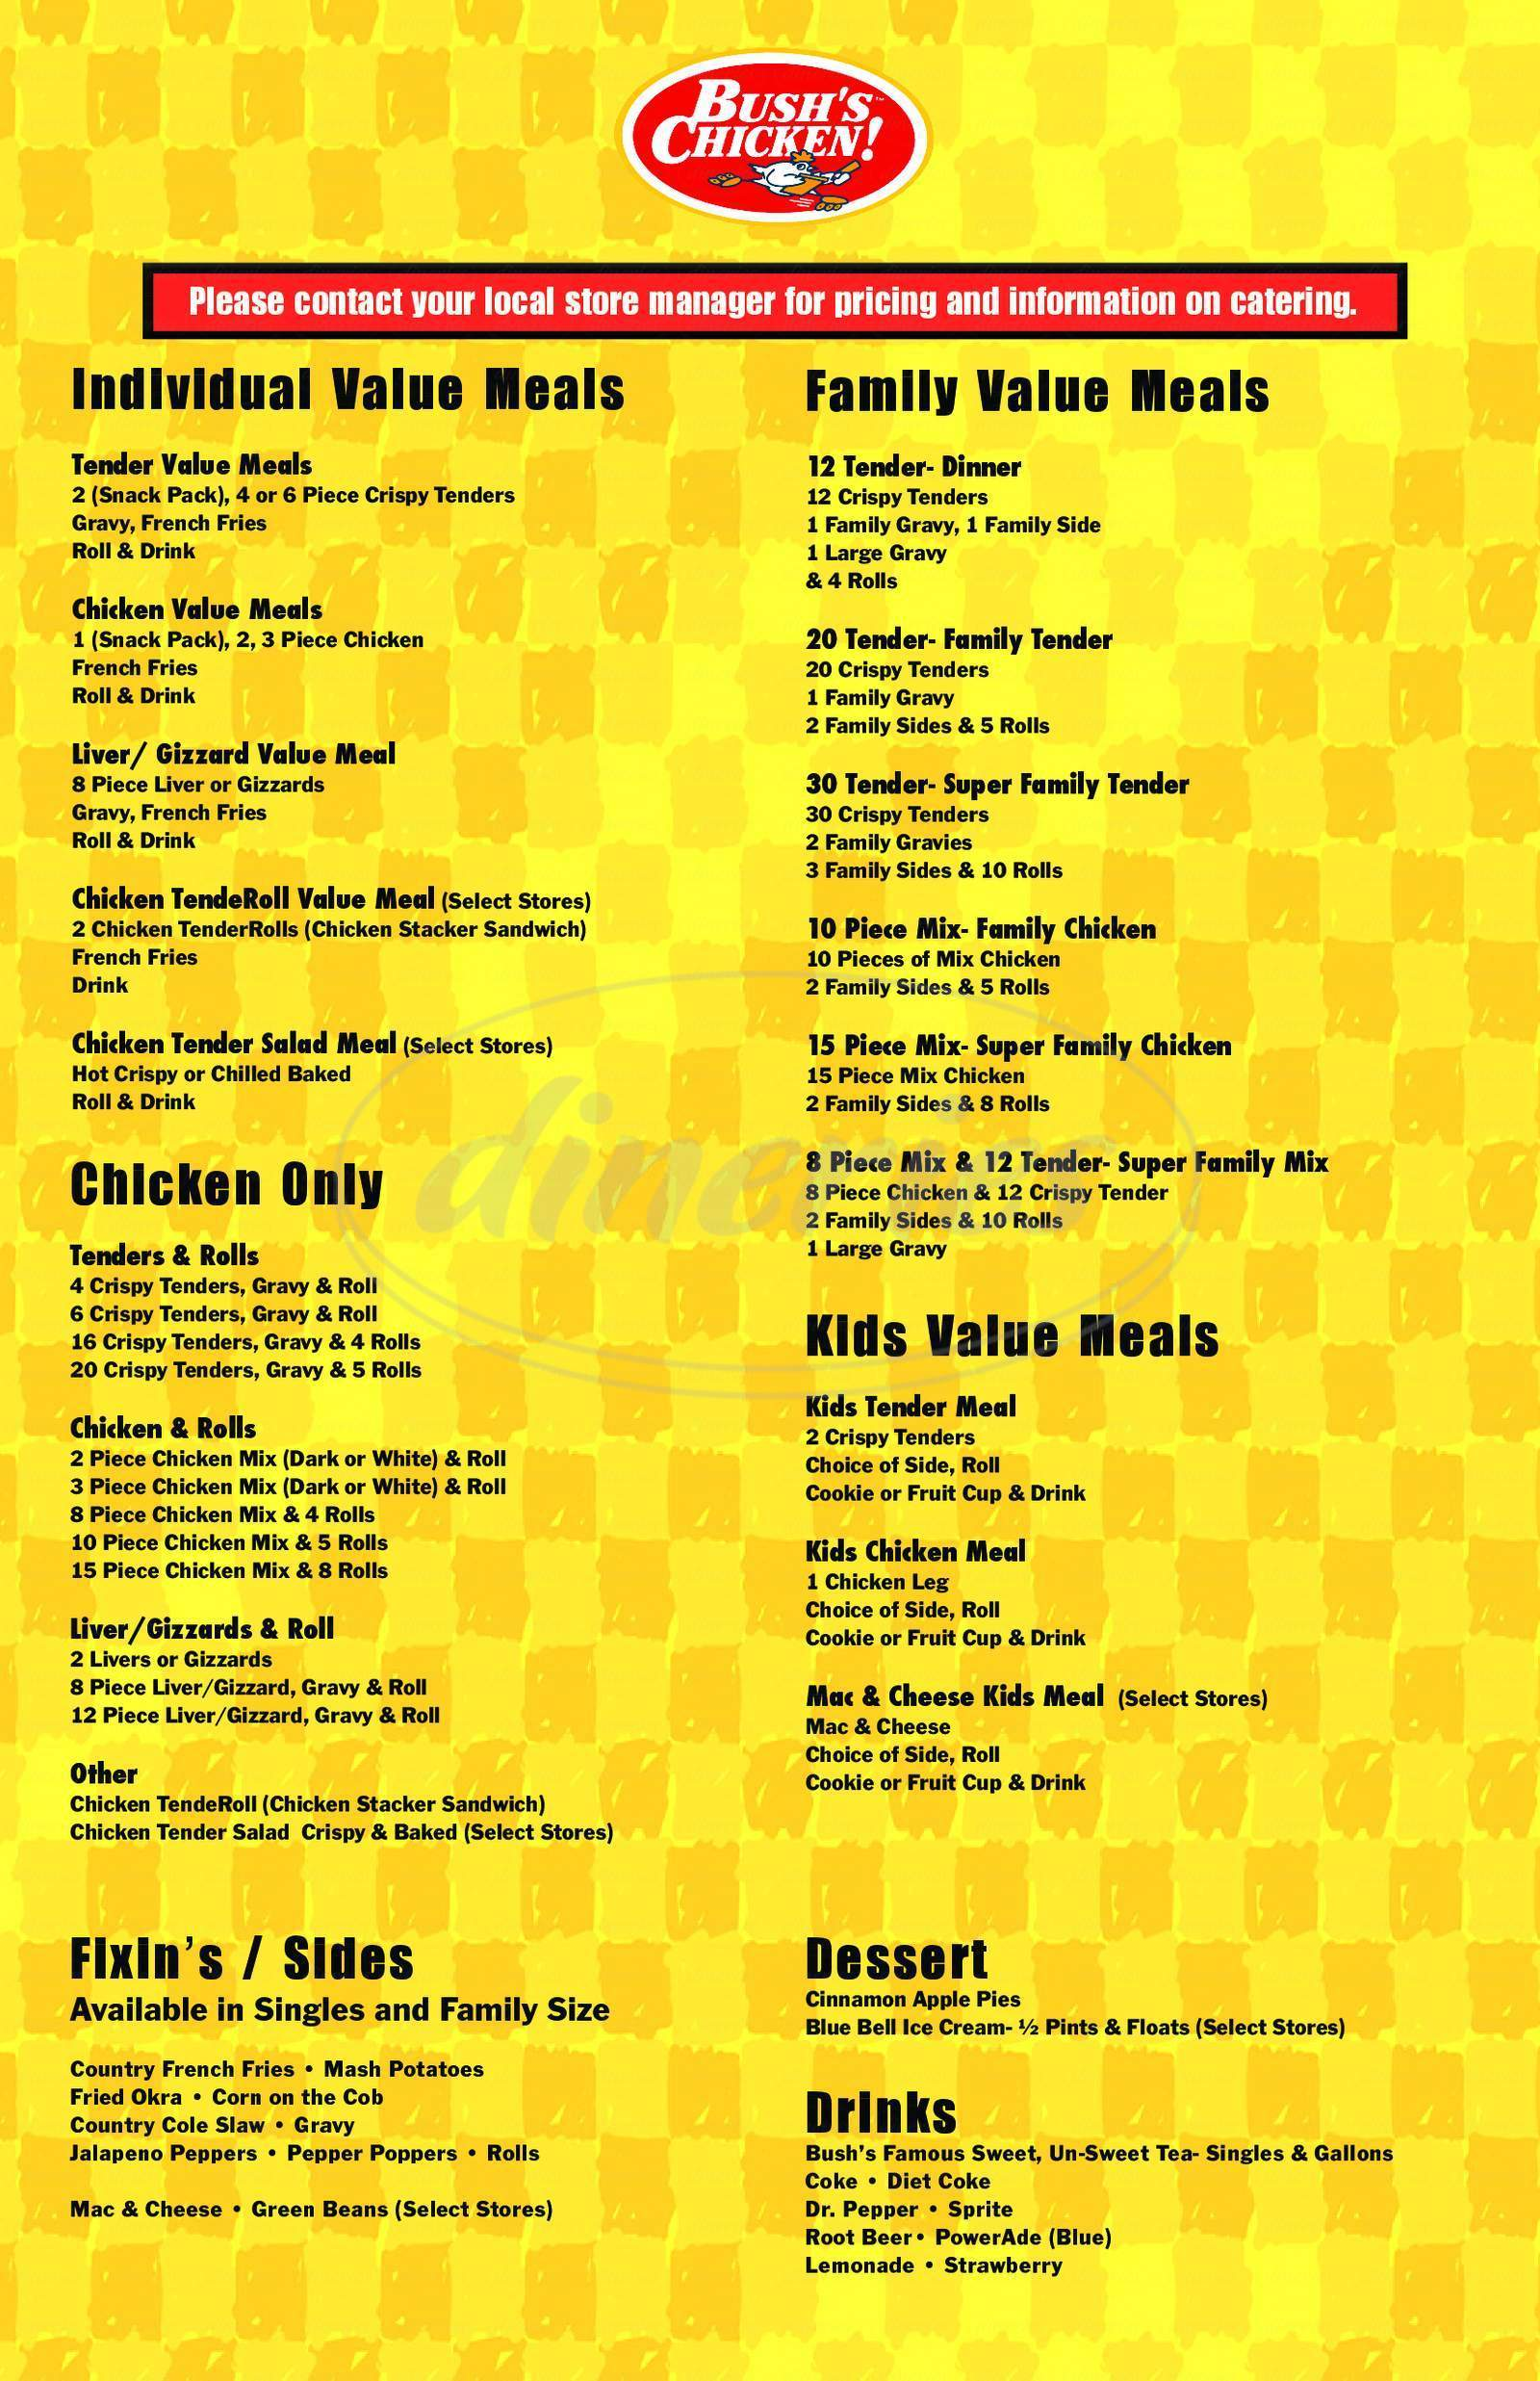 menu for Bush's Chicken!